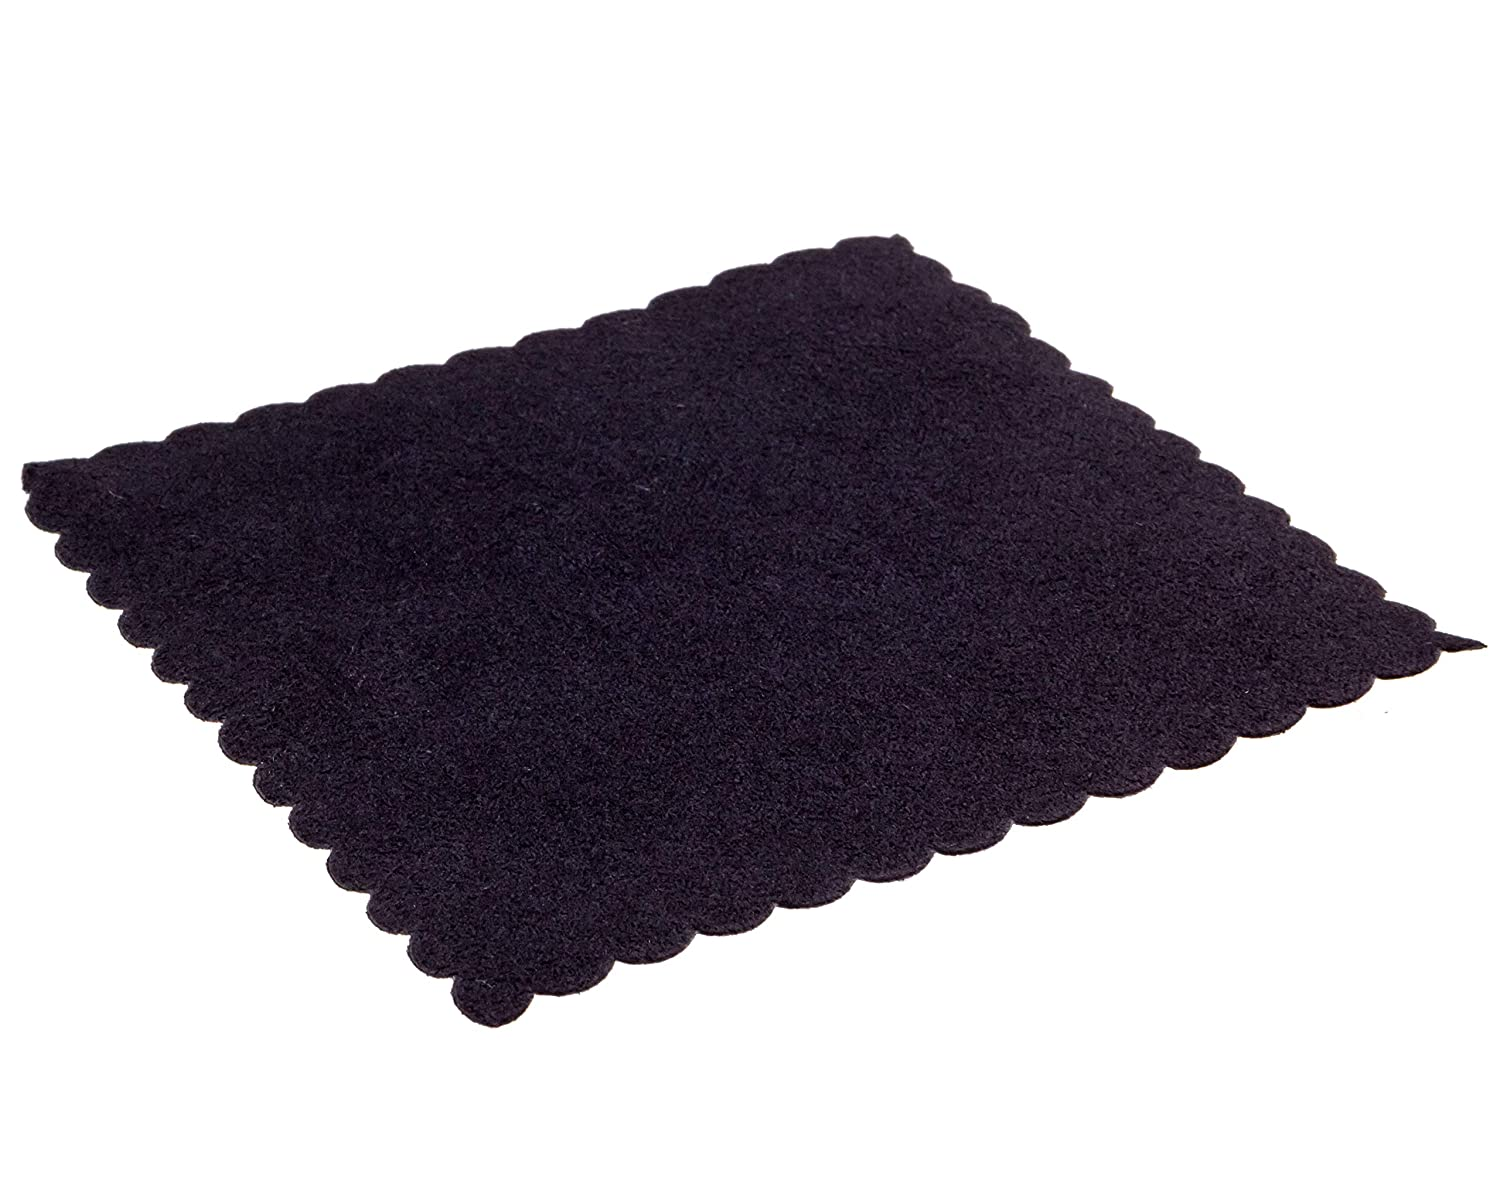 Gold Label Detailing Microfiber Suede Cloth for Ceramic Coating Application 4 x 4 Ultra Soft Edgeless Cloth for Use with A Foam Applicator